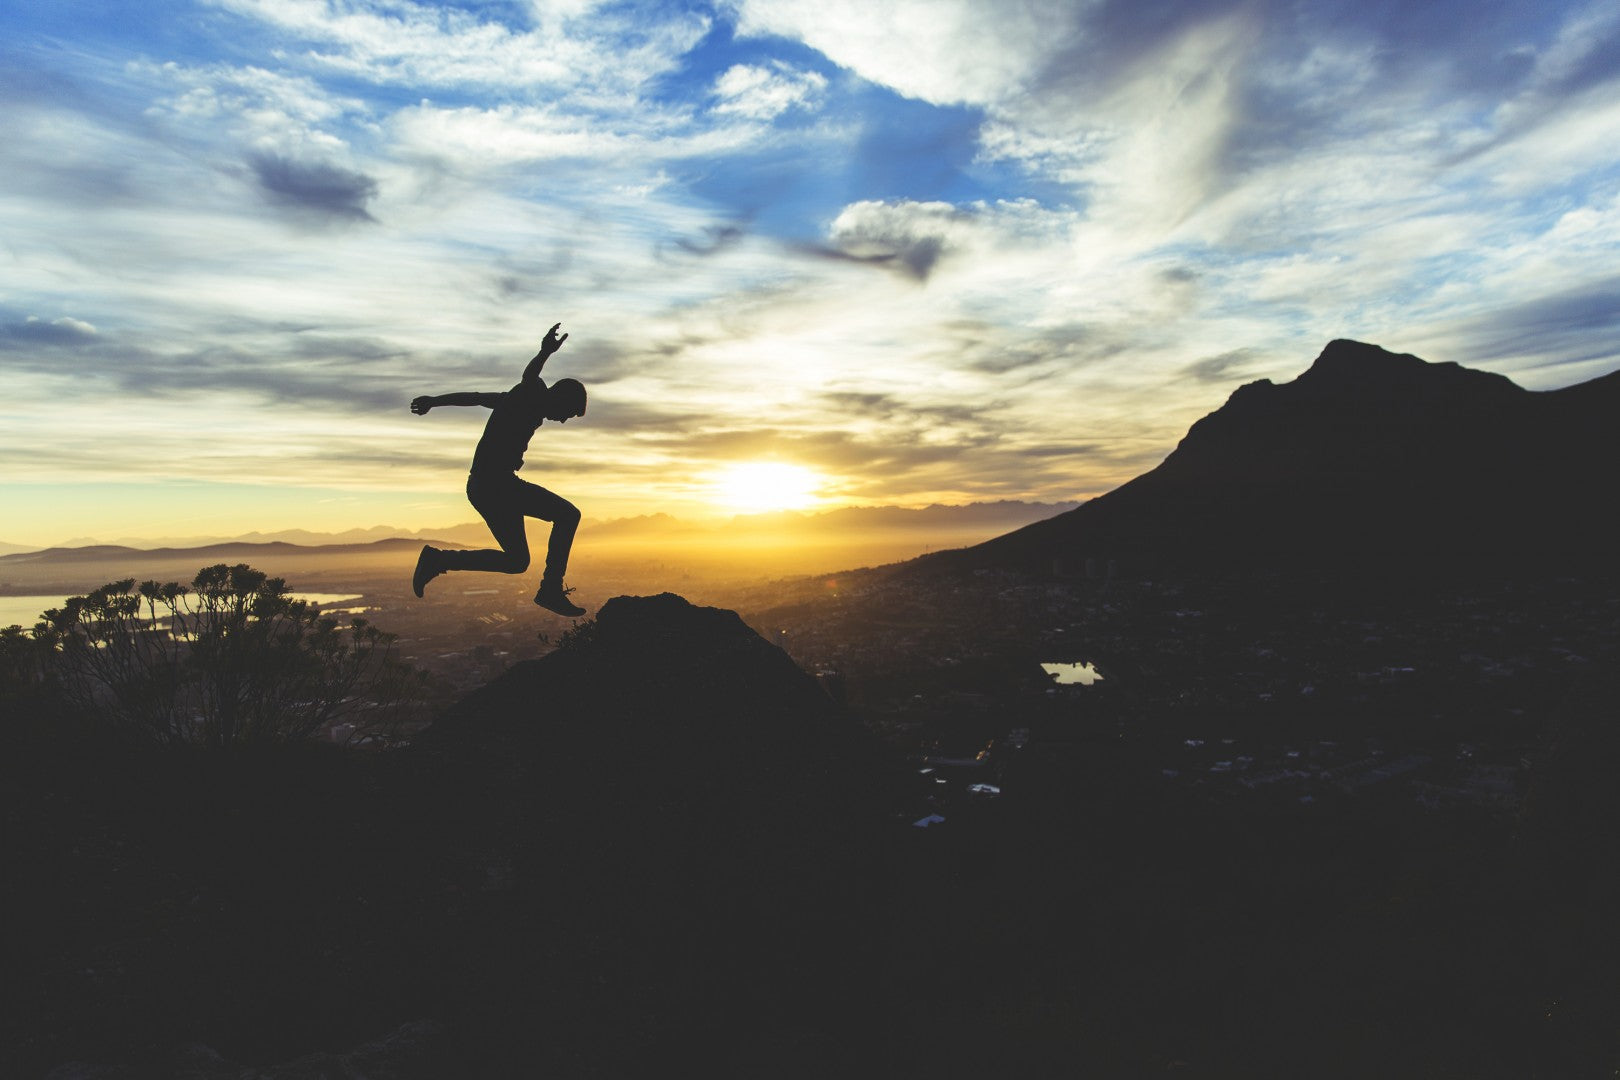 Sunset image of a person taking a big leap off of a cliff.